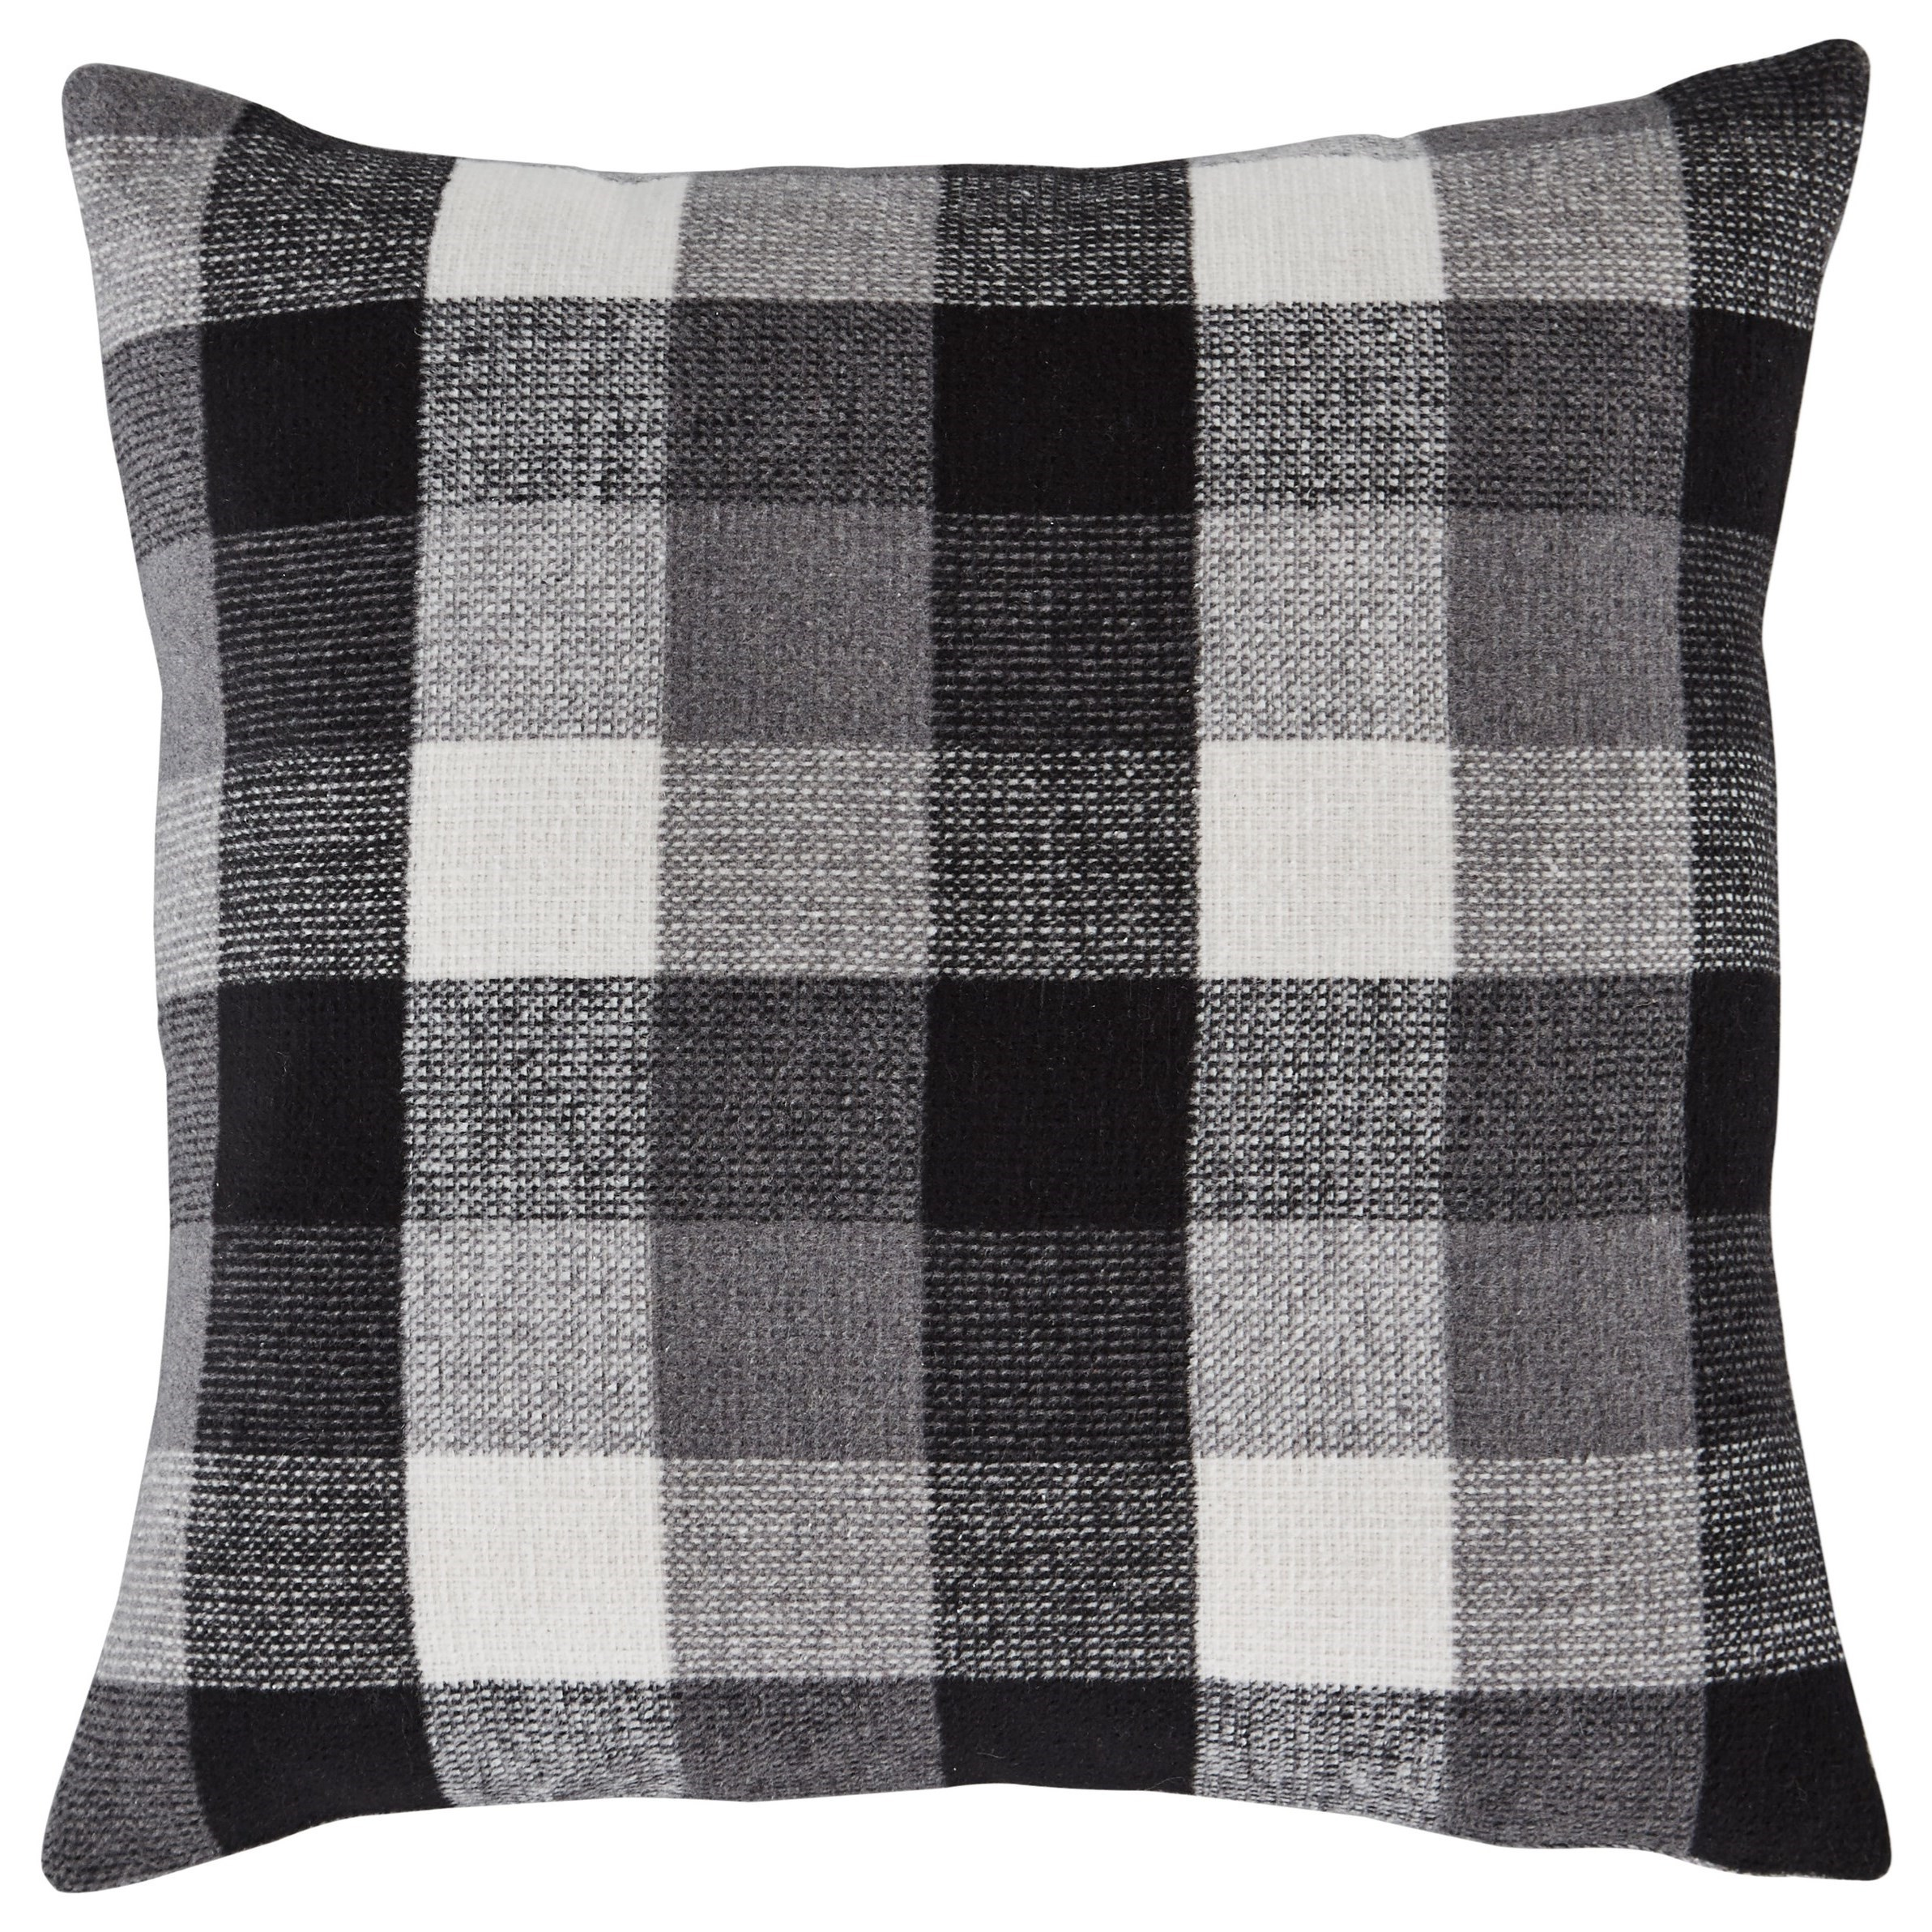 Carrigan Charcoal/White Pillow